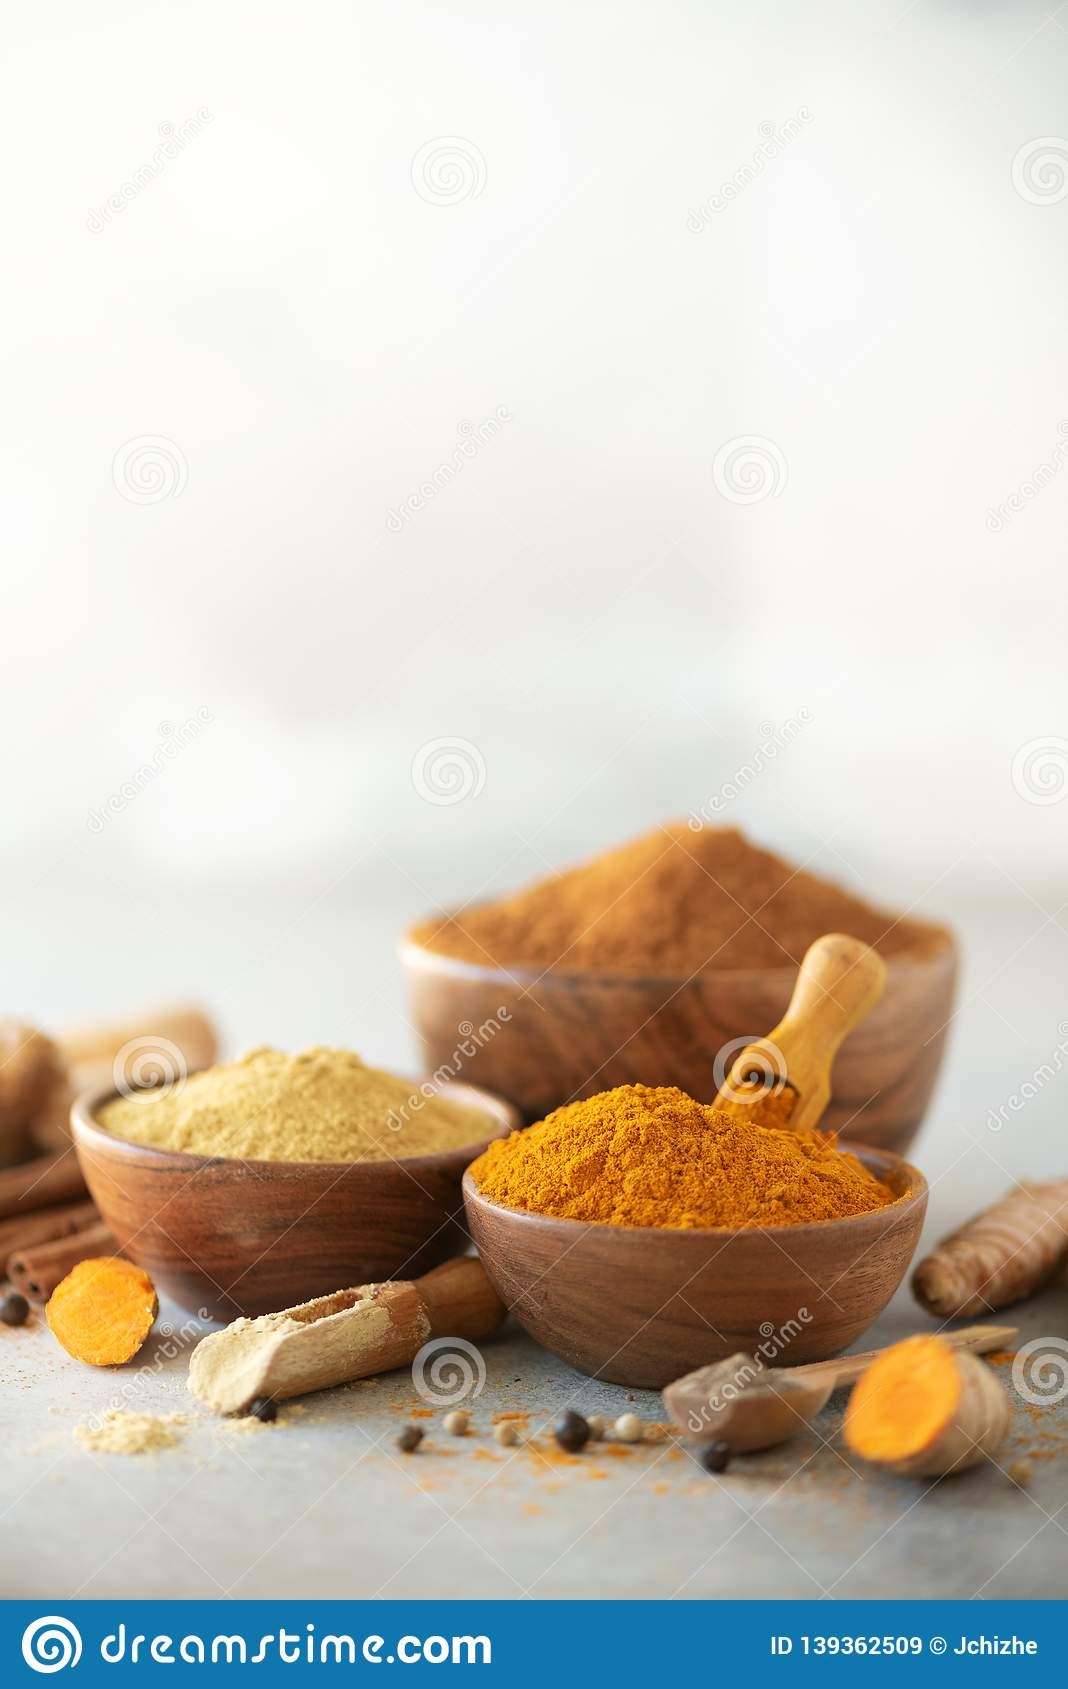 Ingredients for turmeric latte. Ground turmeric, curcuma root, cinnamon, ginger, black pepper on grey background. Spices